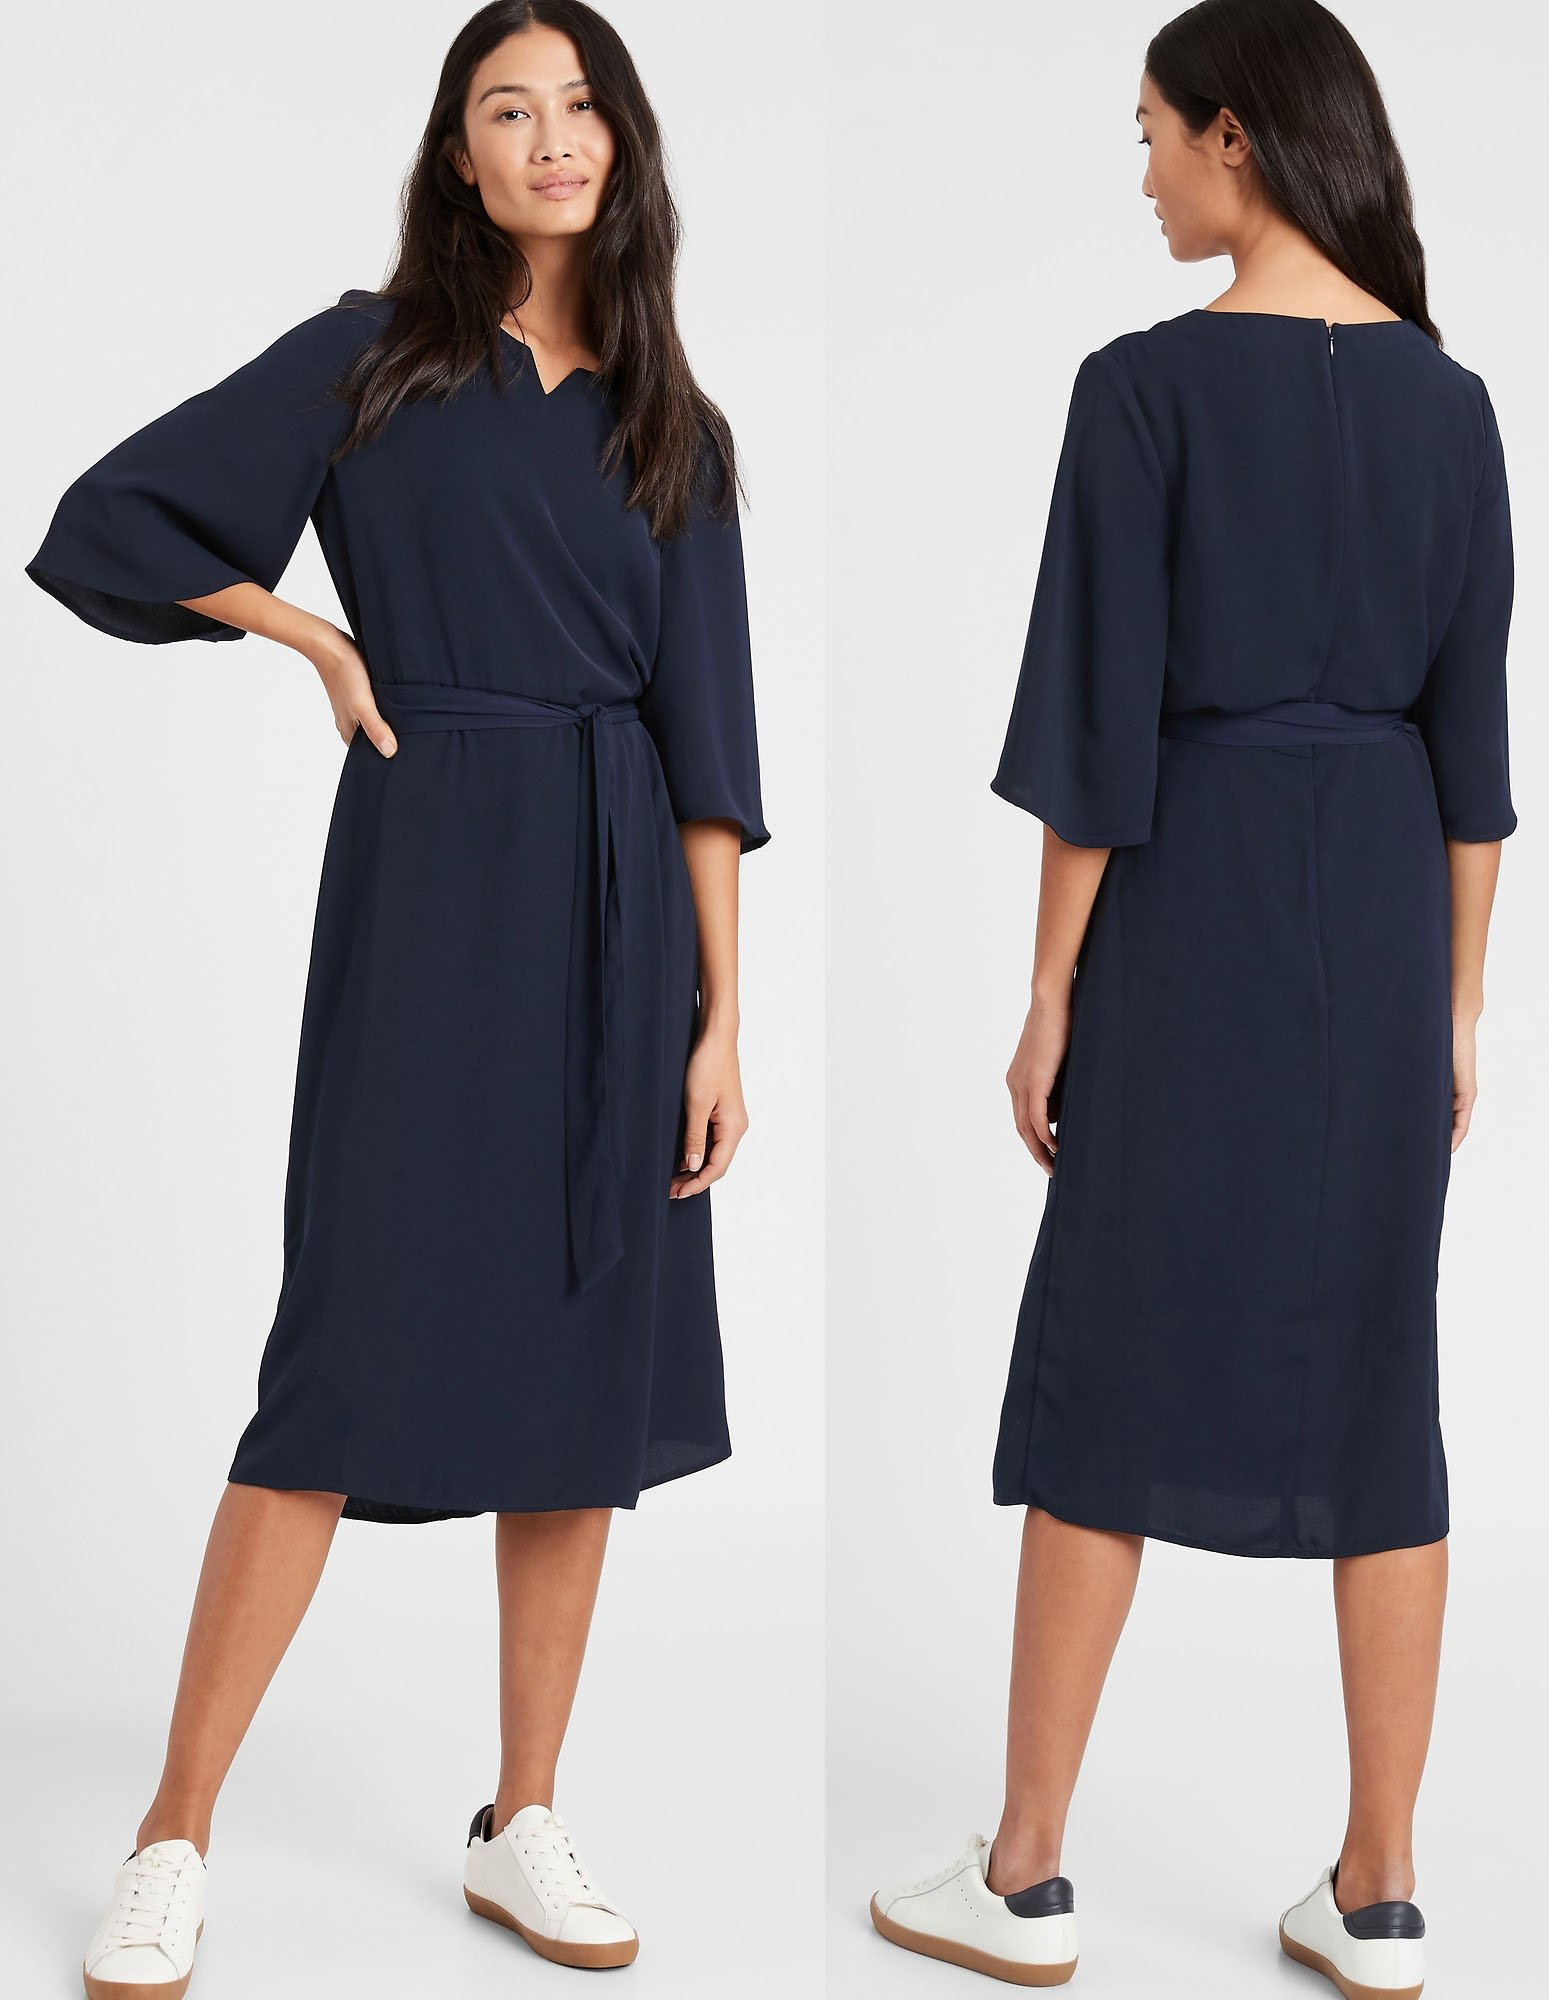 The label also has a wide selection of chic dresses that are suitable for the office